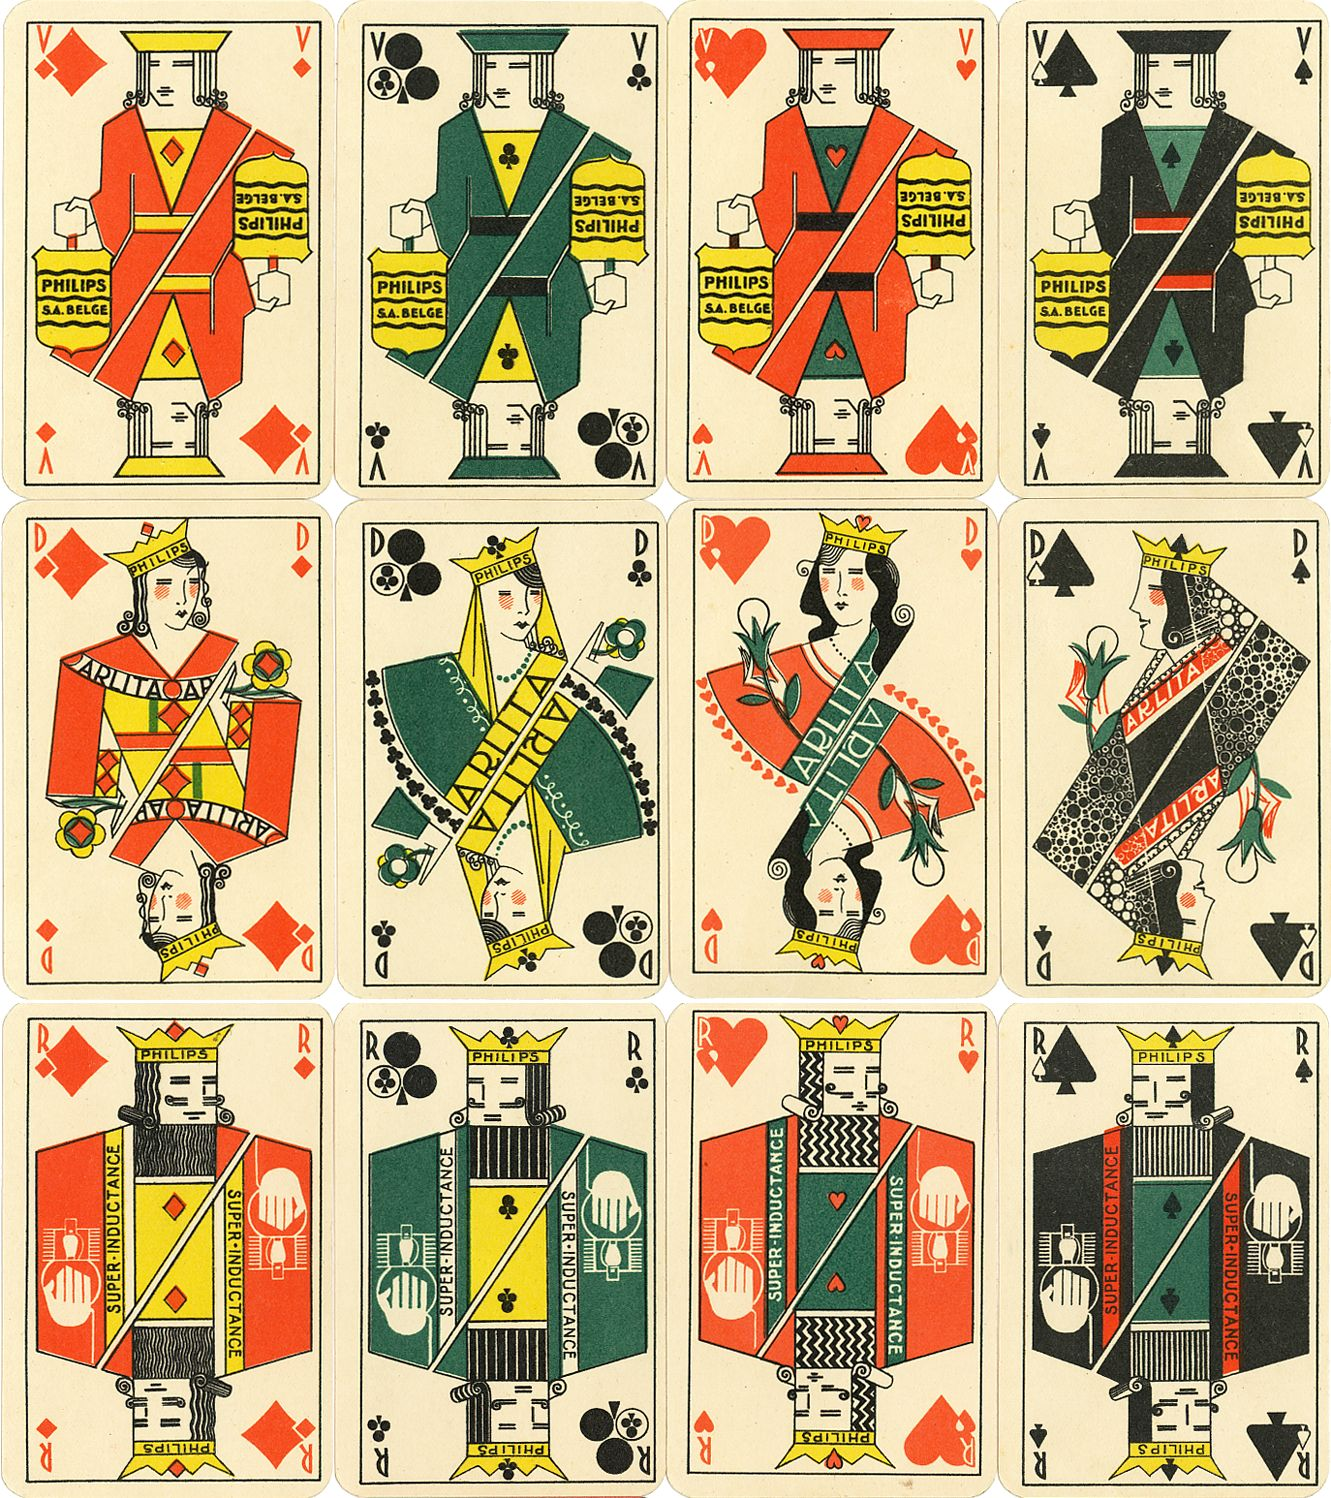 Philips 'Arlita' advertising playing cards made by Etabl. Mesmaekers Frères S.A., Belgium, 1925